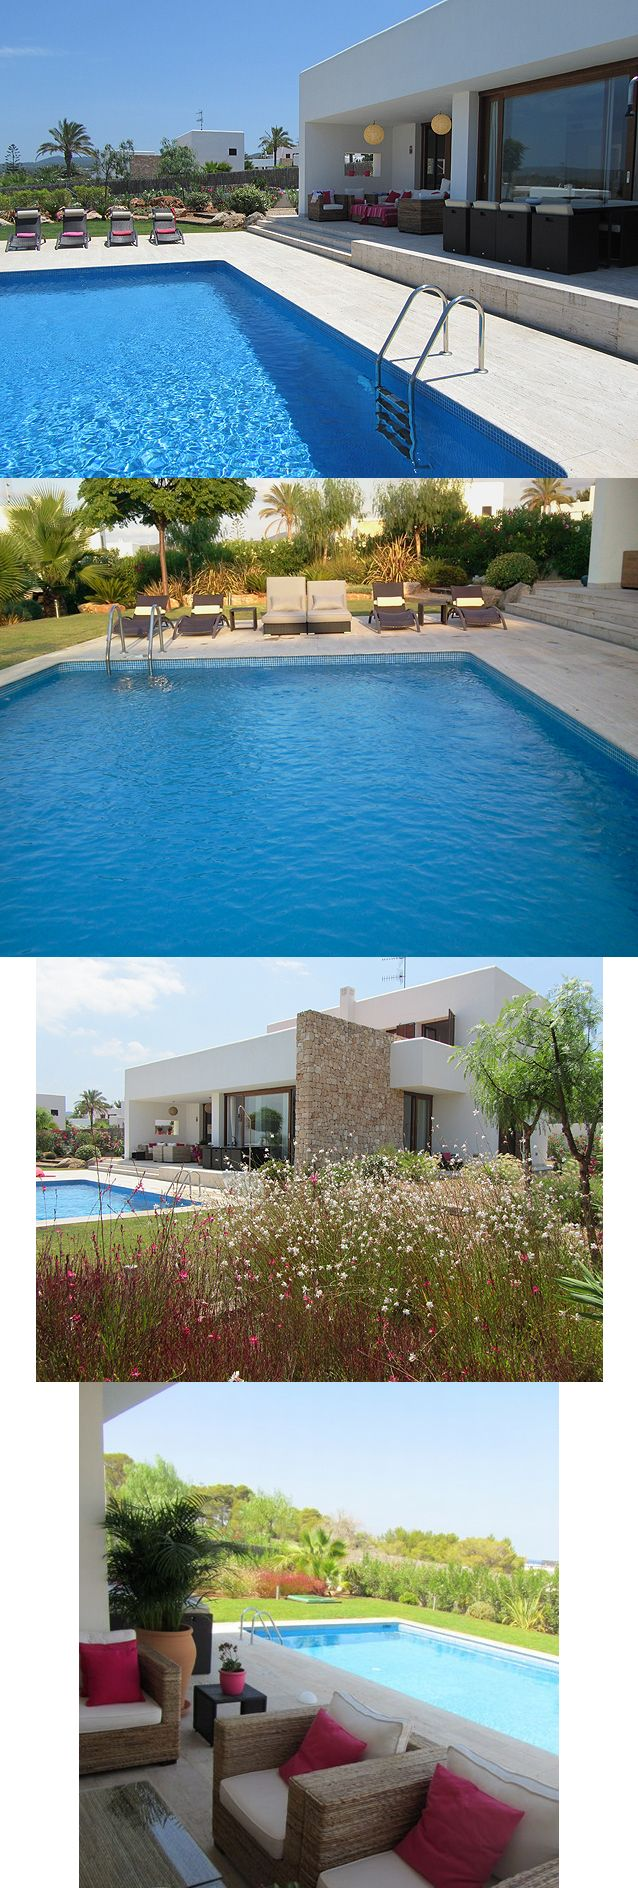 33 best piscinas images on pinterest architecture for Casas con jardin y piscina